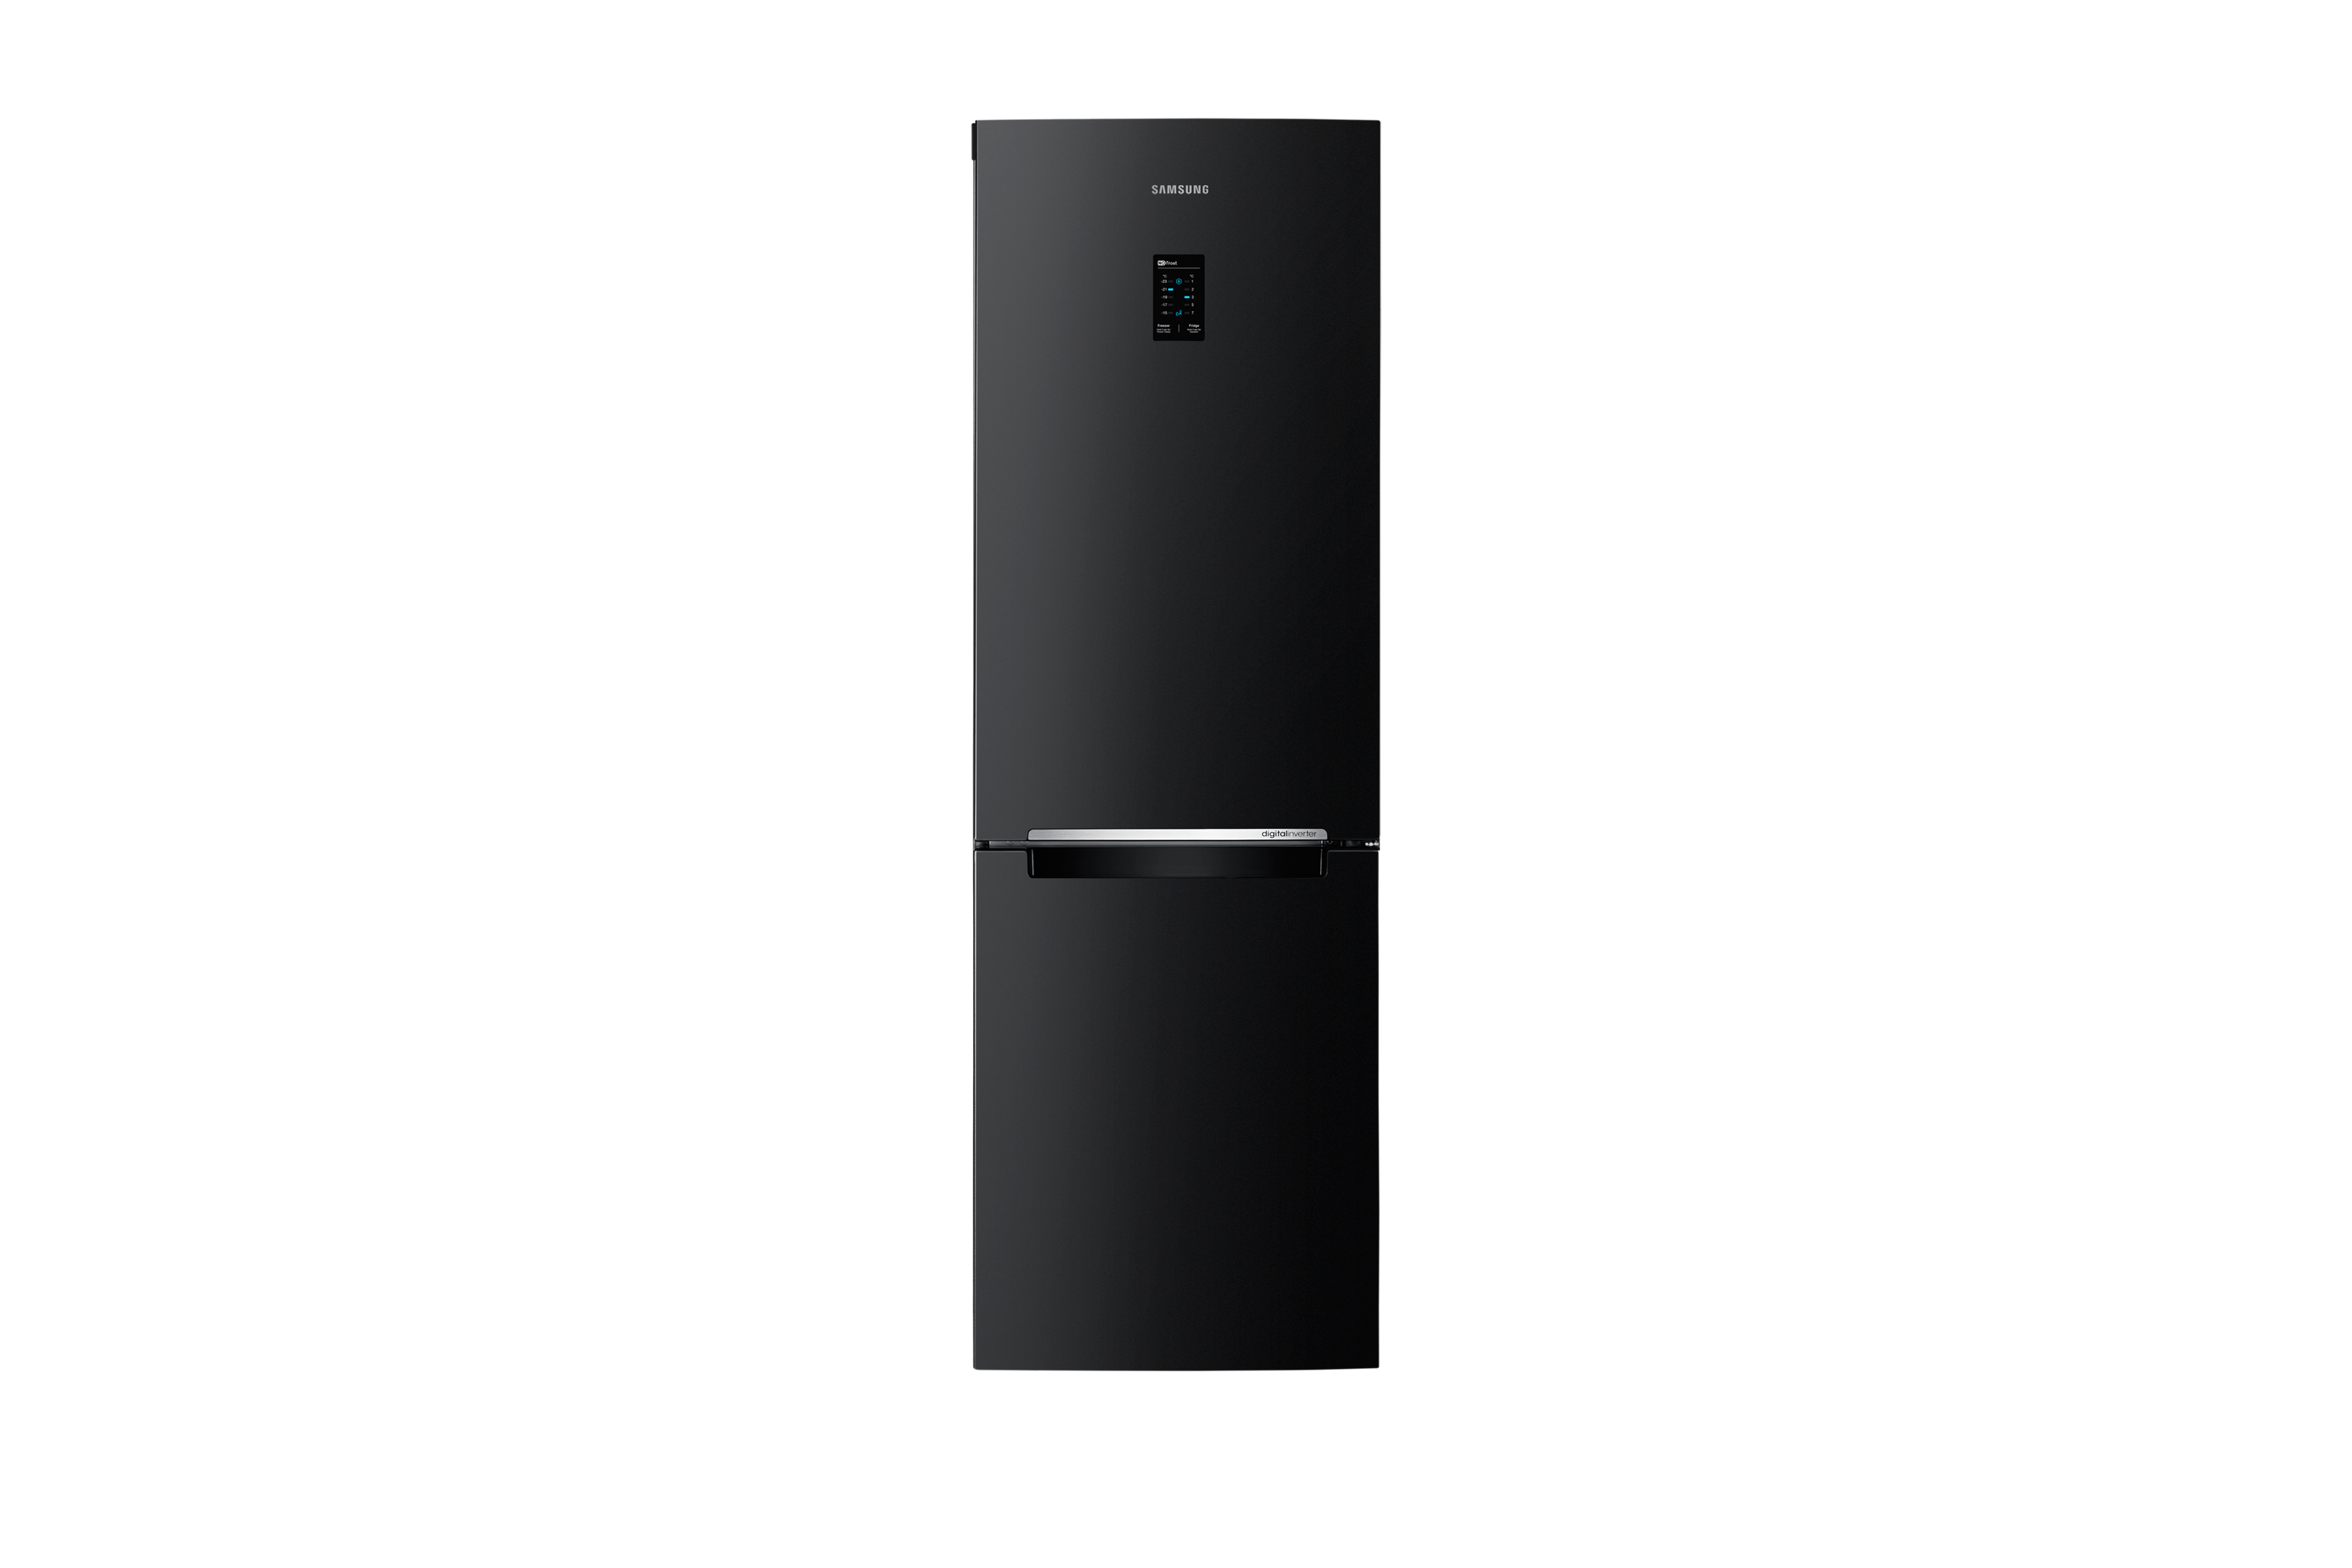 Compare retail prices of RB31 Fridge Freezer with Digital Inverter Technology, 310 L by Samsung to get the best deal online